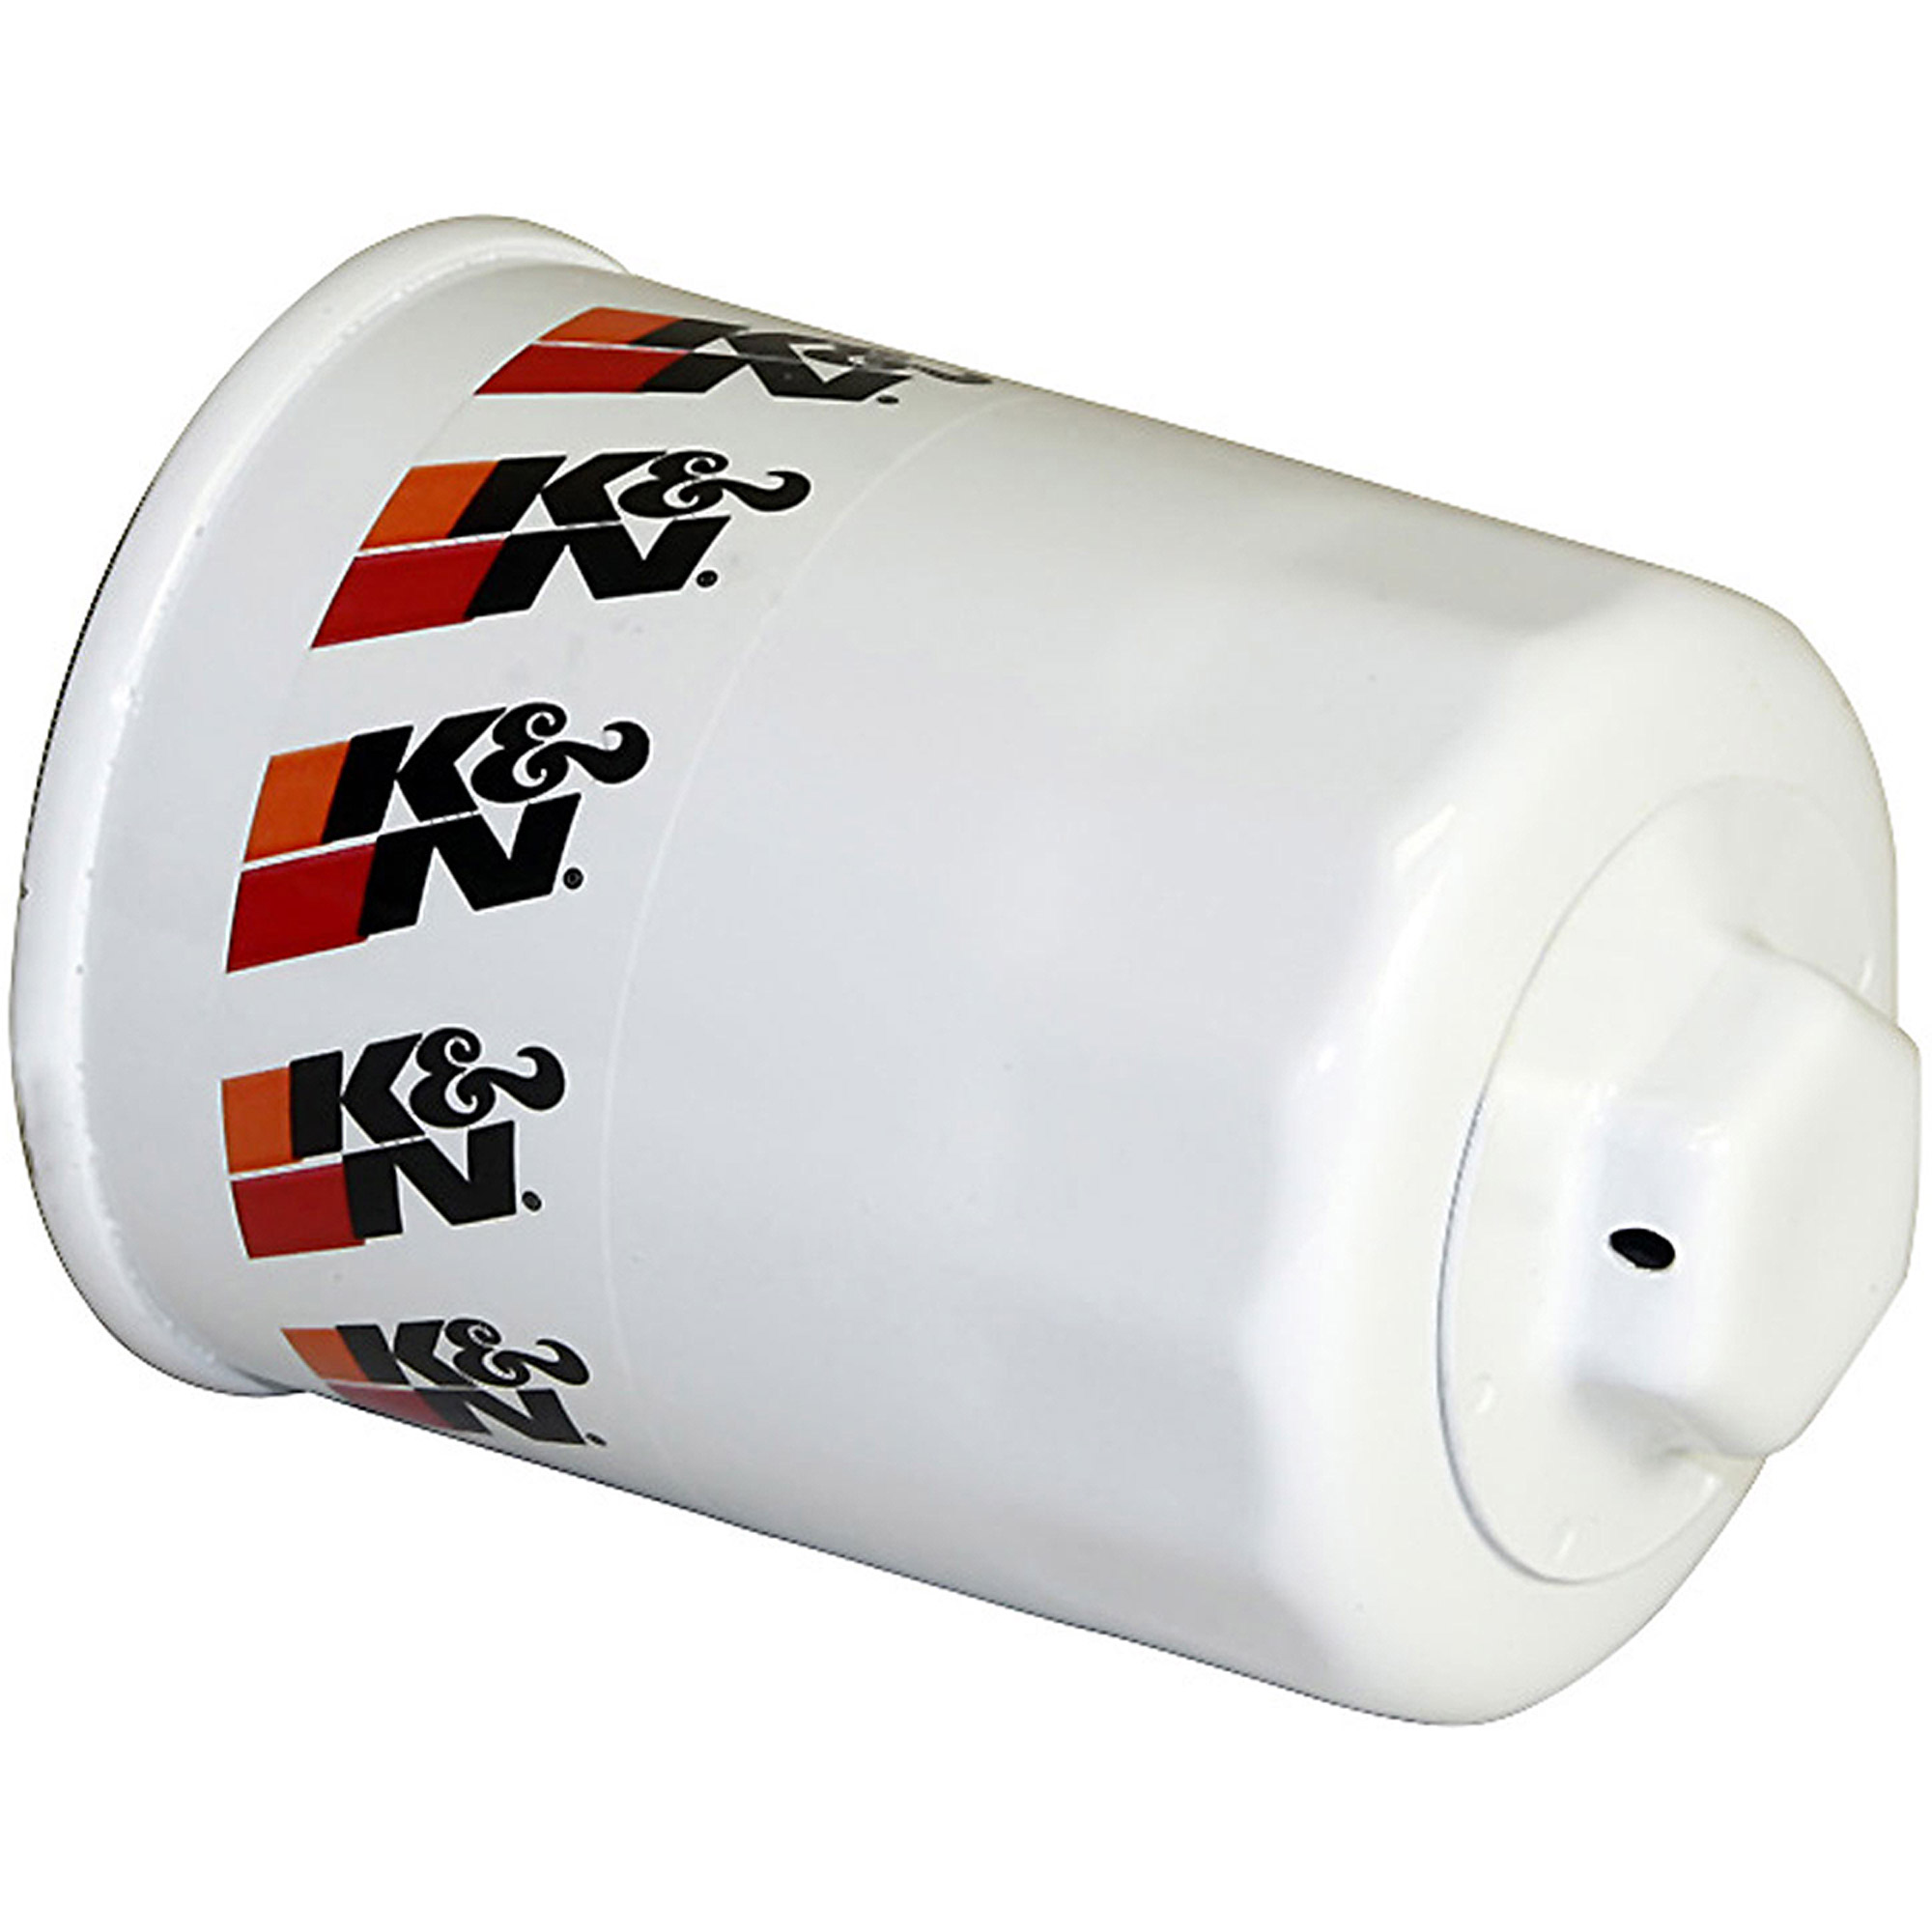 Oil filters walmart kn oil filter hp 1010 nvjuhfo Image collections